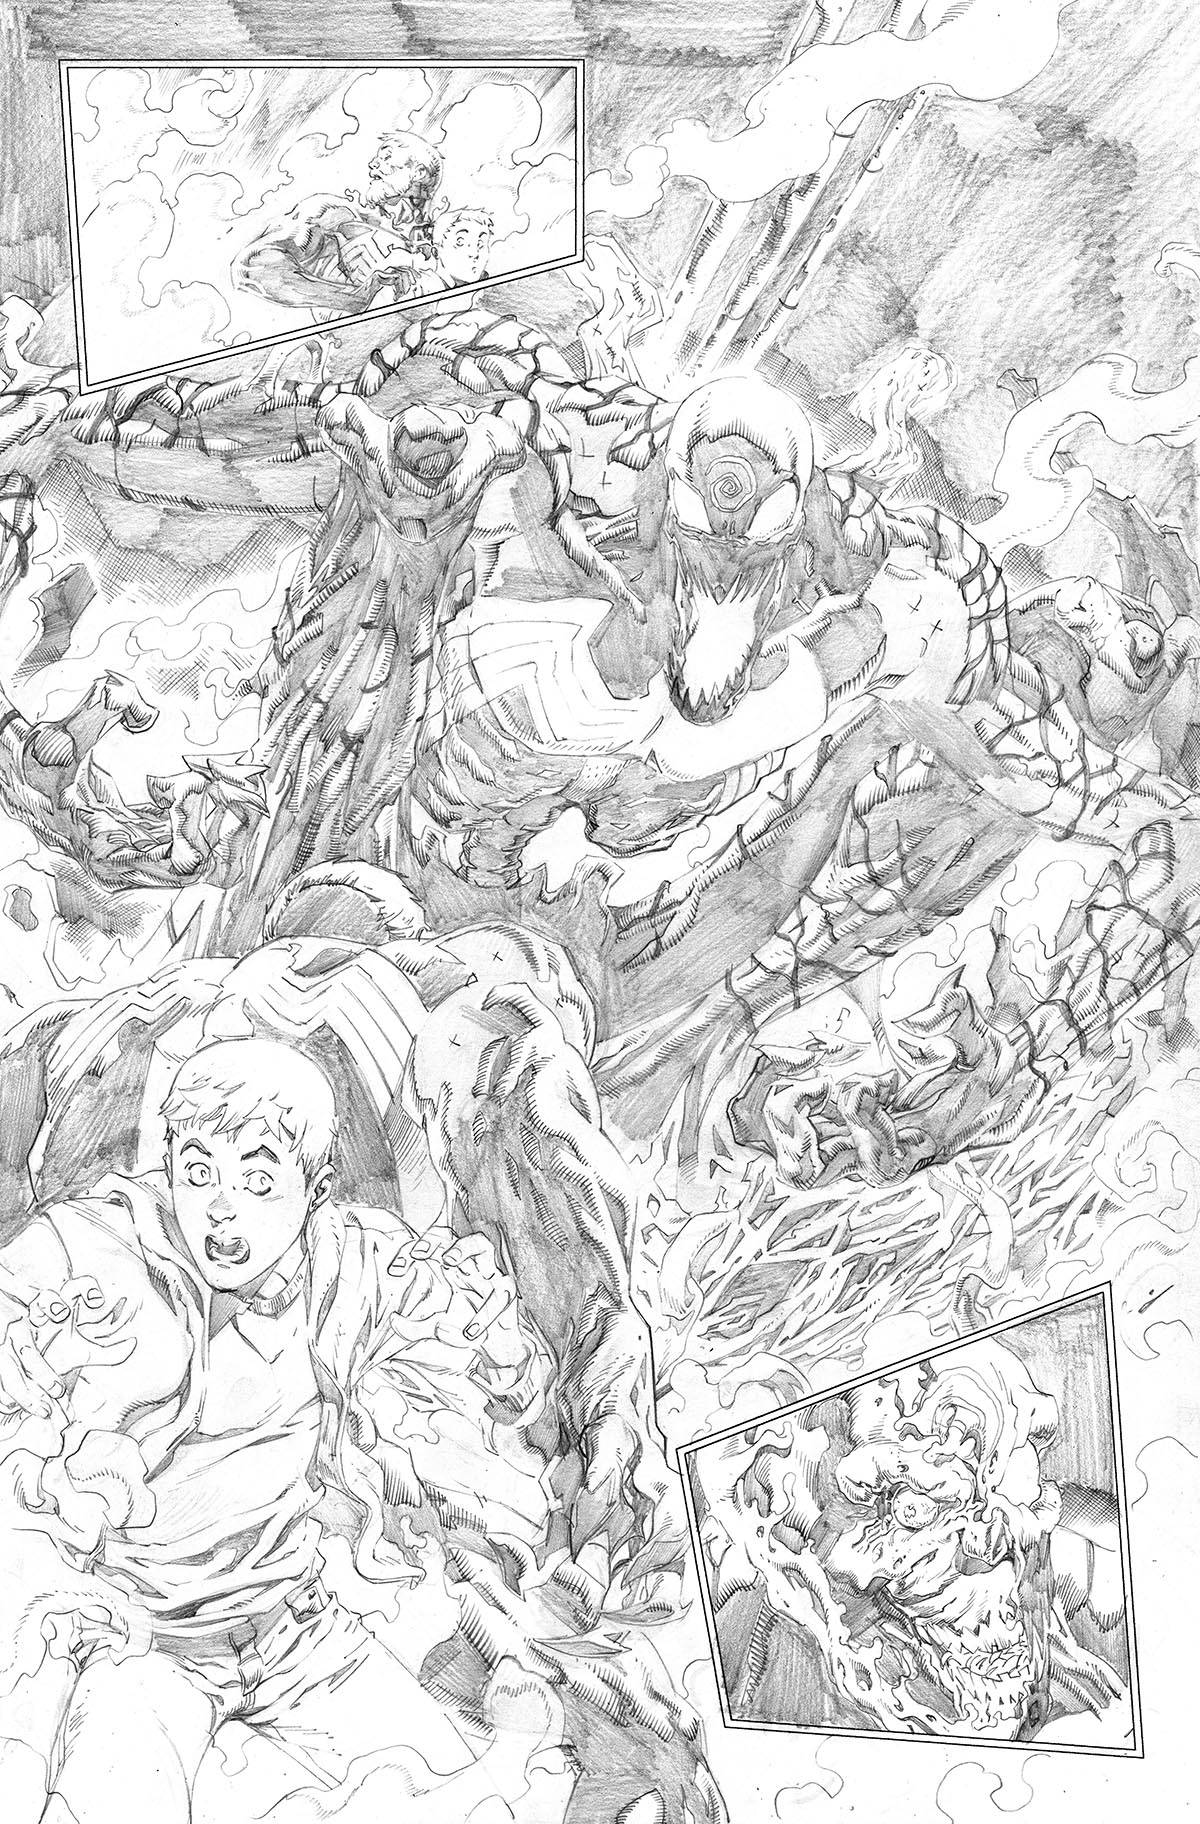 Pencils_Preview.jpeg